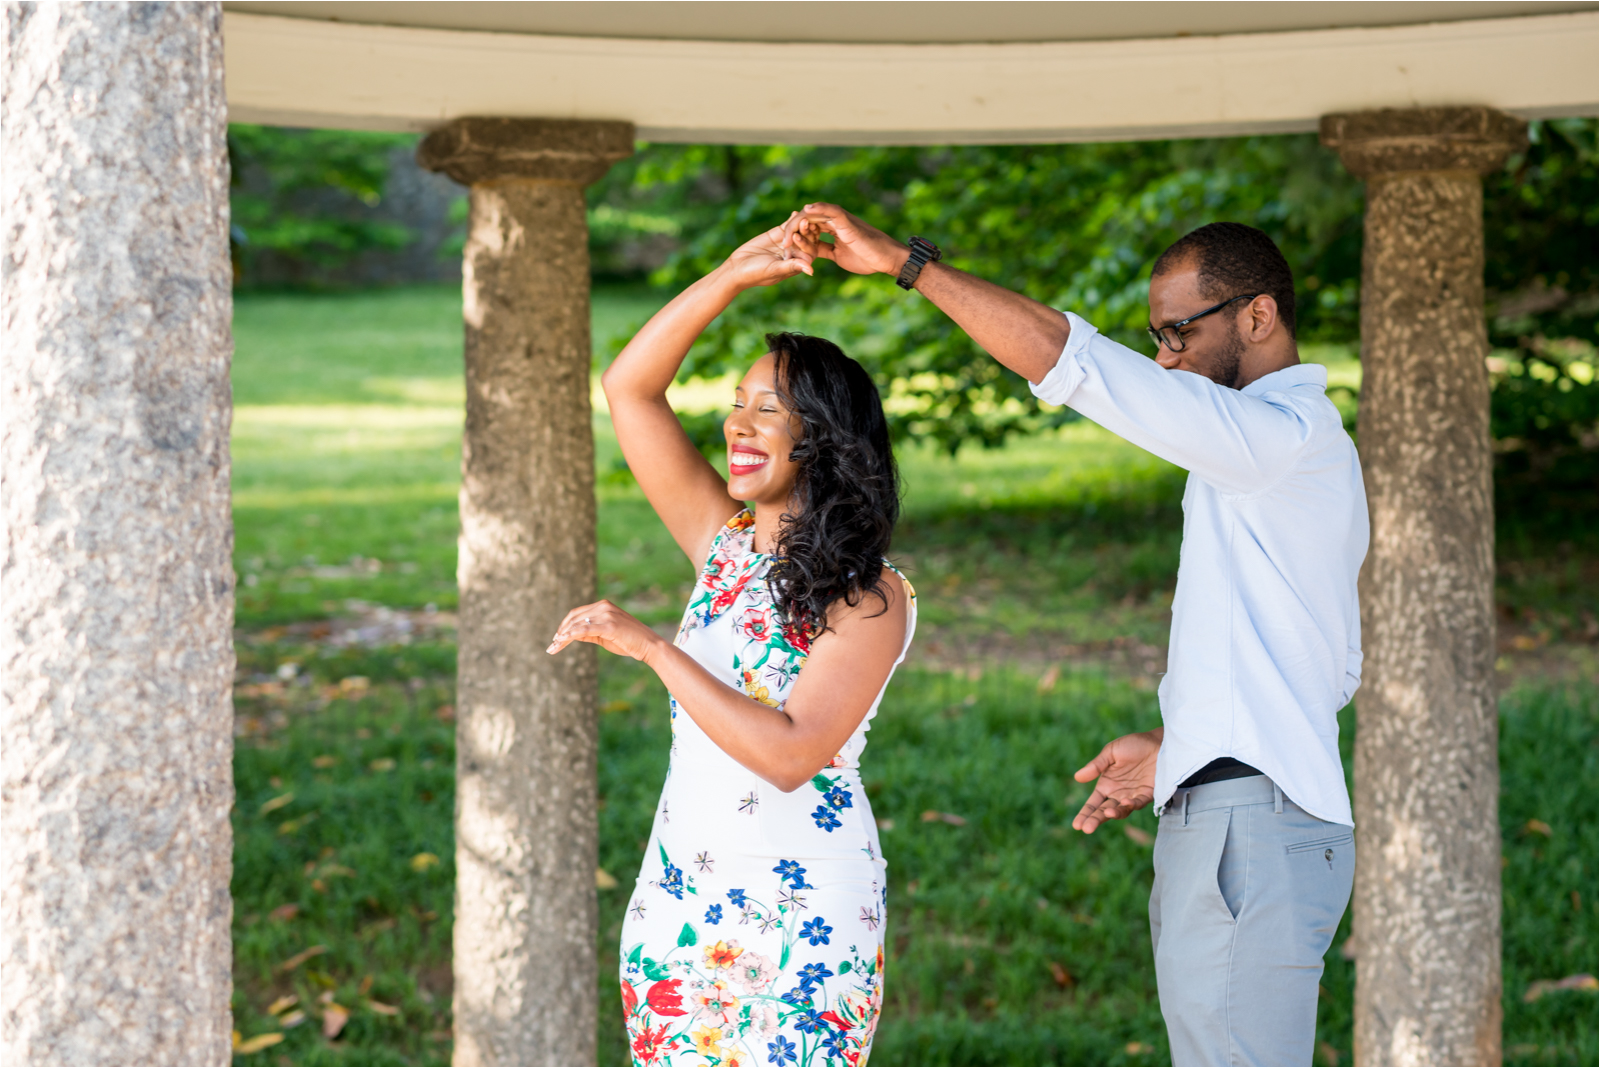 italian-gardens-engagement-images-maymont-park-italian-japanese-gardens-richmond-virginia-rva-va-focus-on-joy-photography-african-american-couple-white-dress-colorful-flowers-blue-polo-shirt-richmond